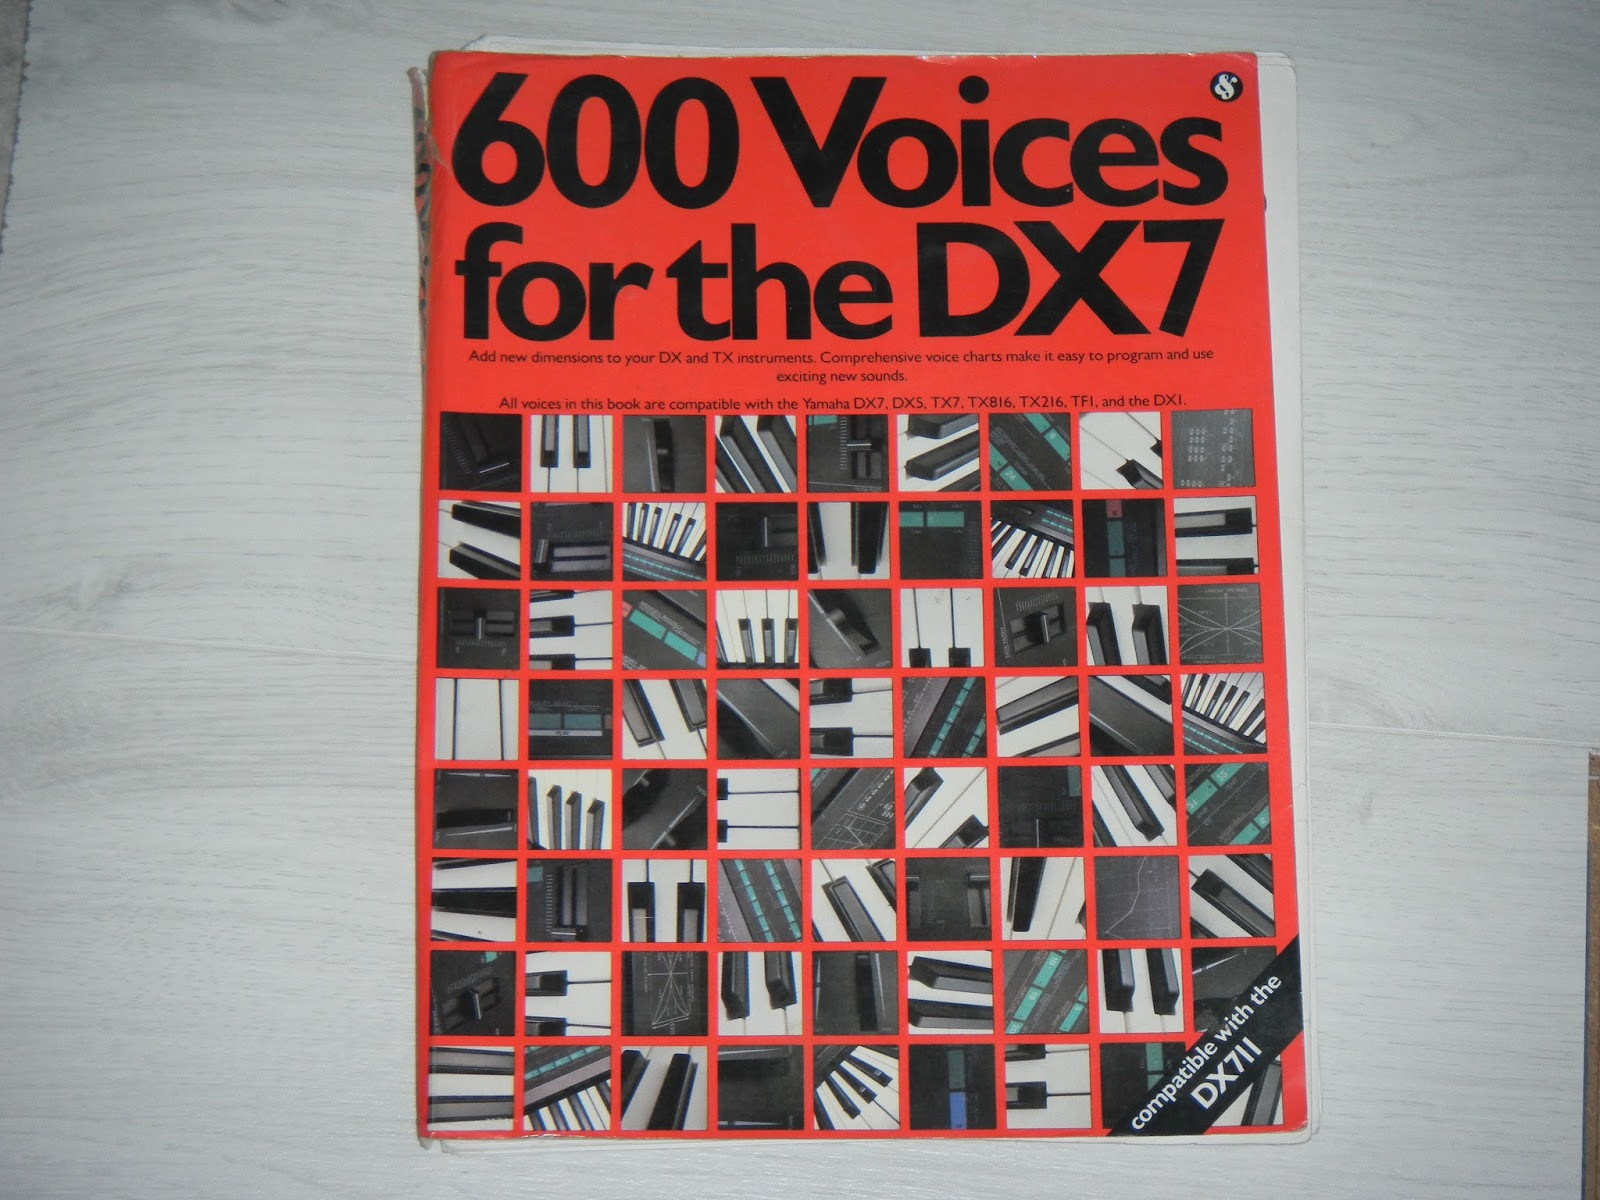 Infrequent Sound [sex tex] technology: 600 Voices for the